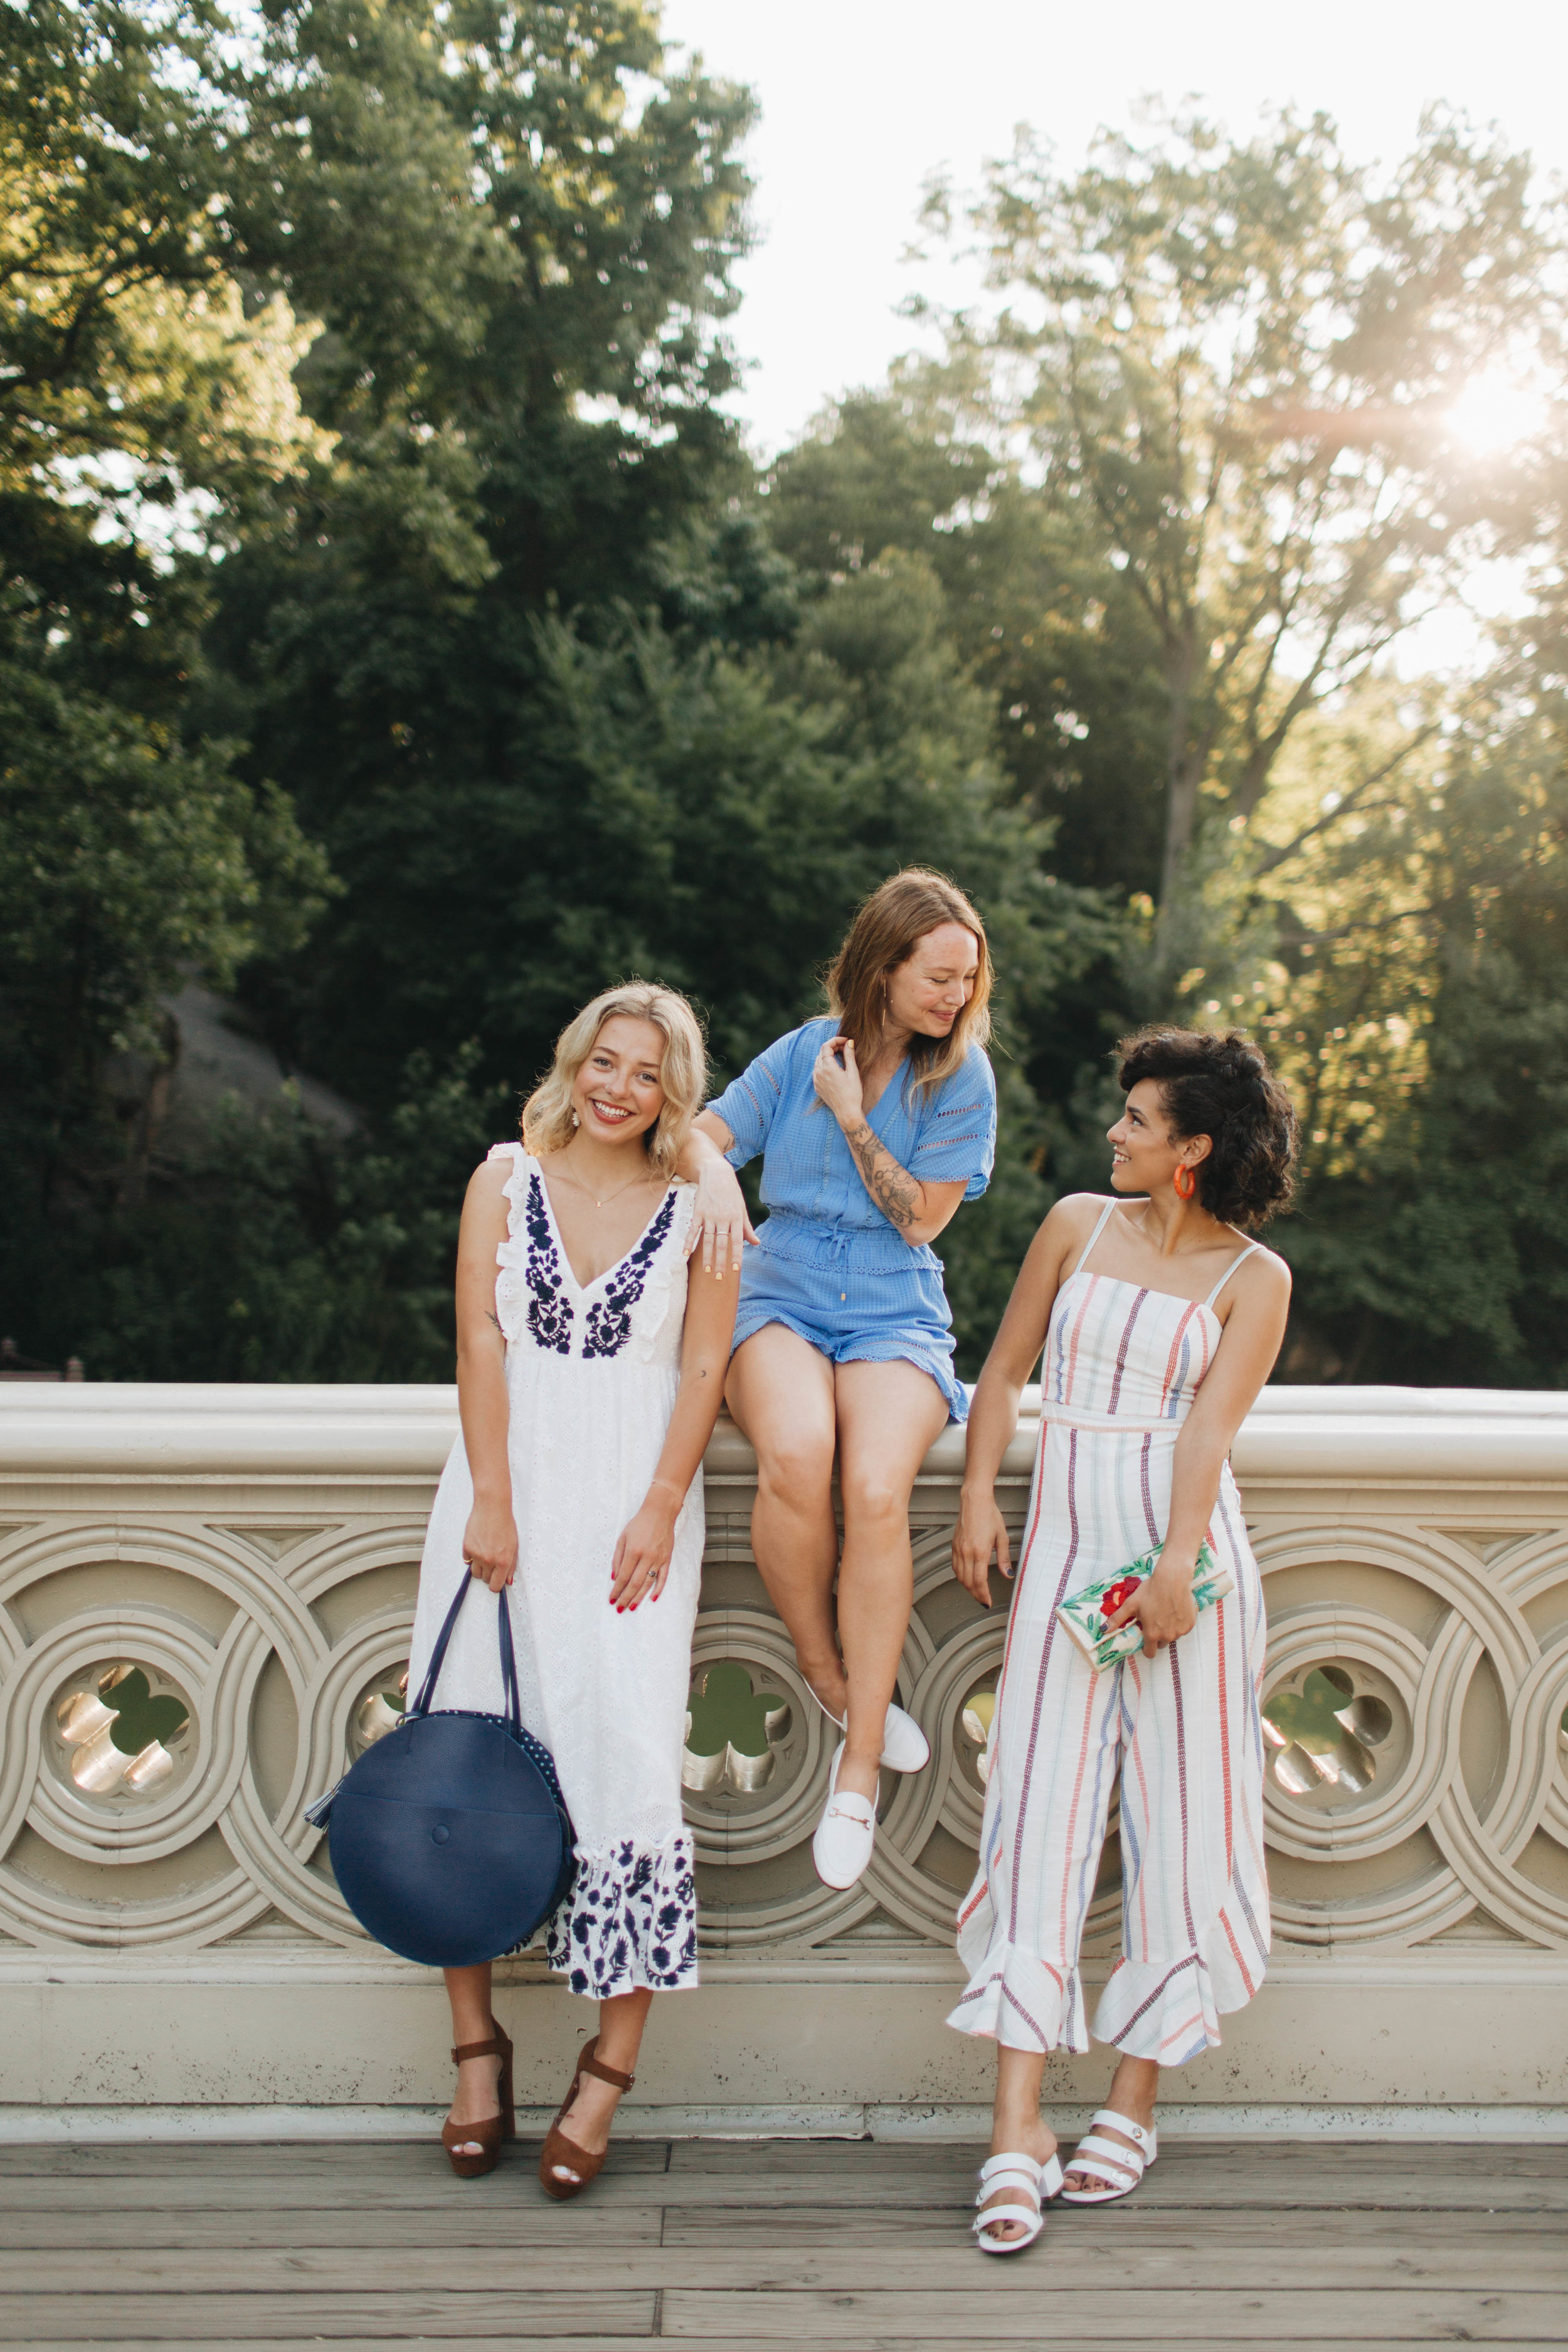 Anthropologie_July_4th_The_Teagues14.jpg